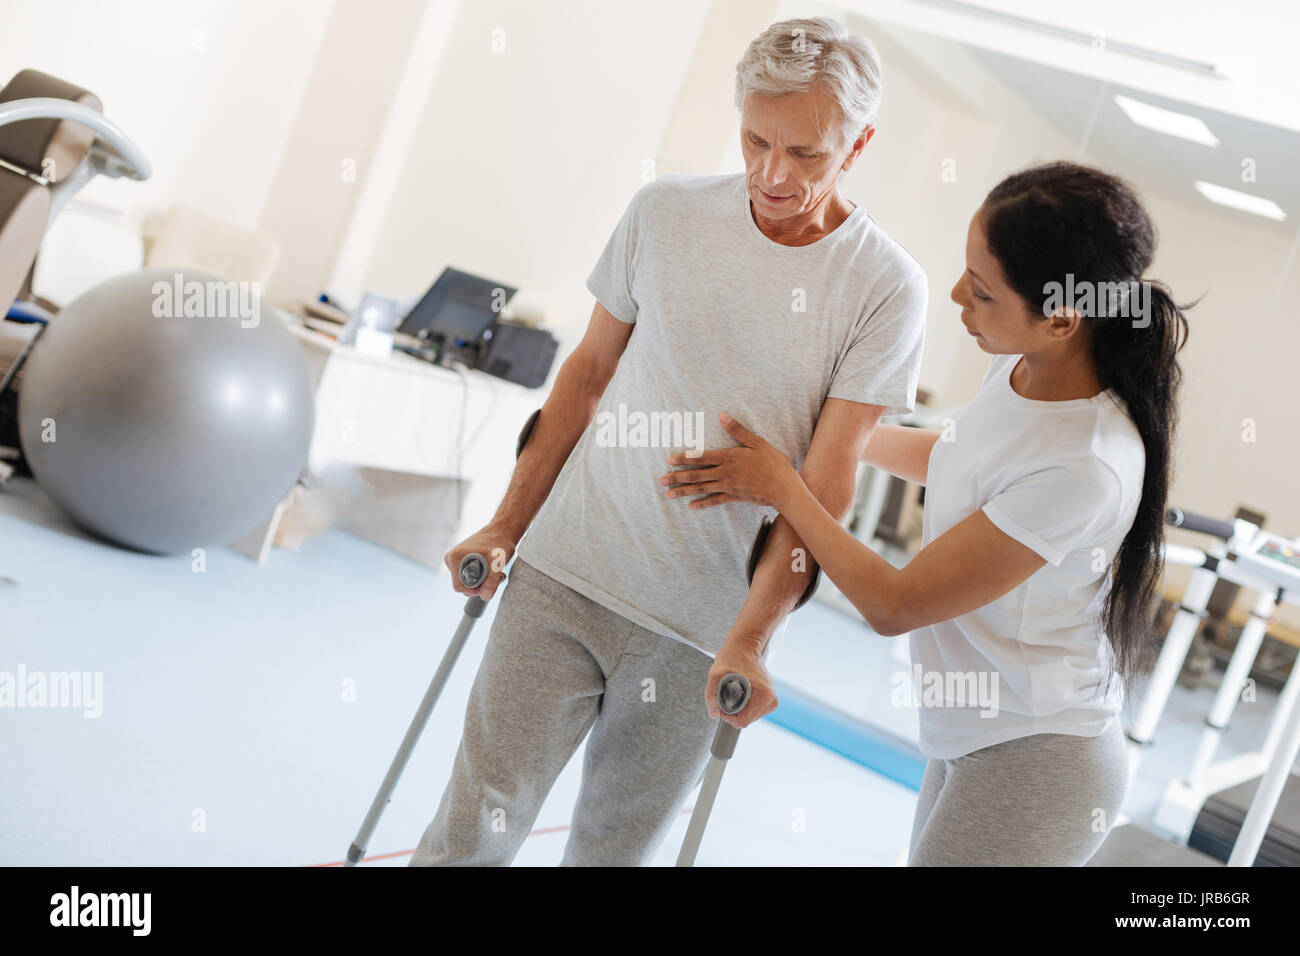 Concentrated grey-haired man bowing head - Stock Image